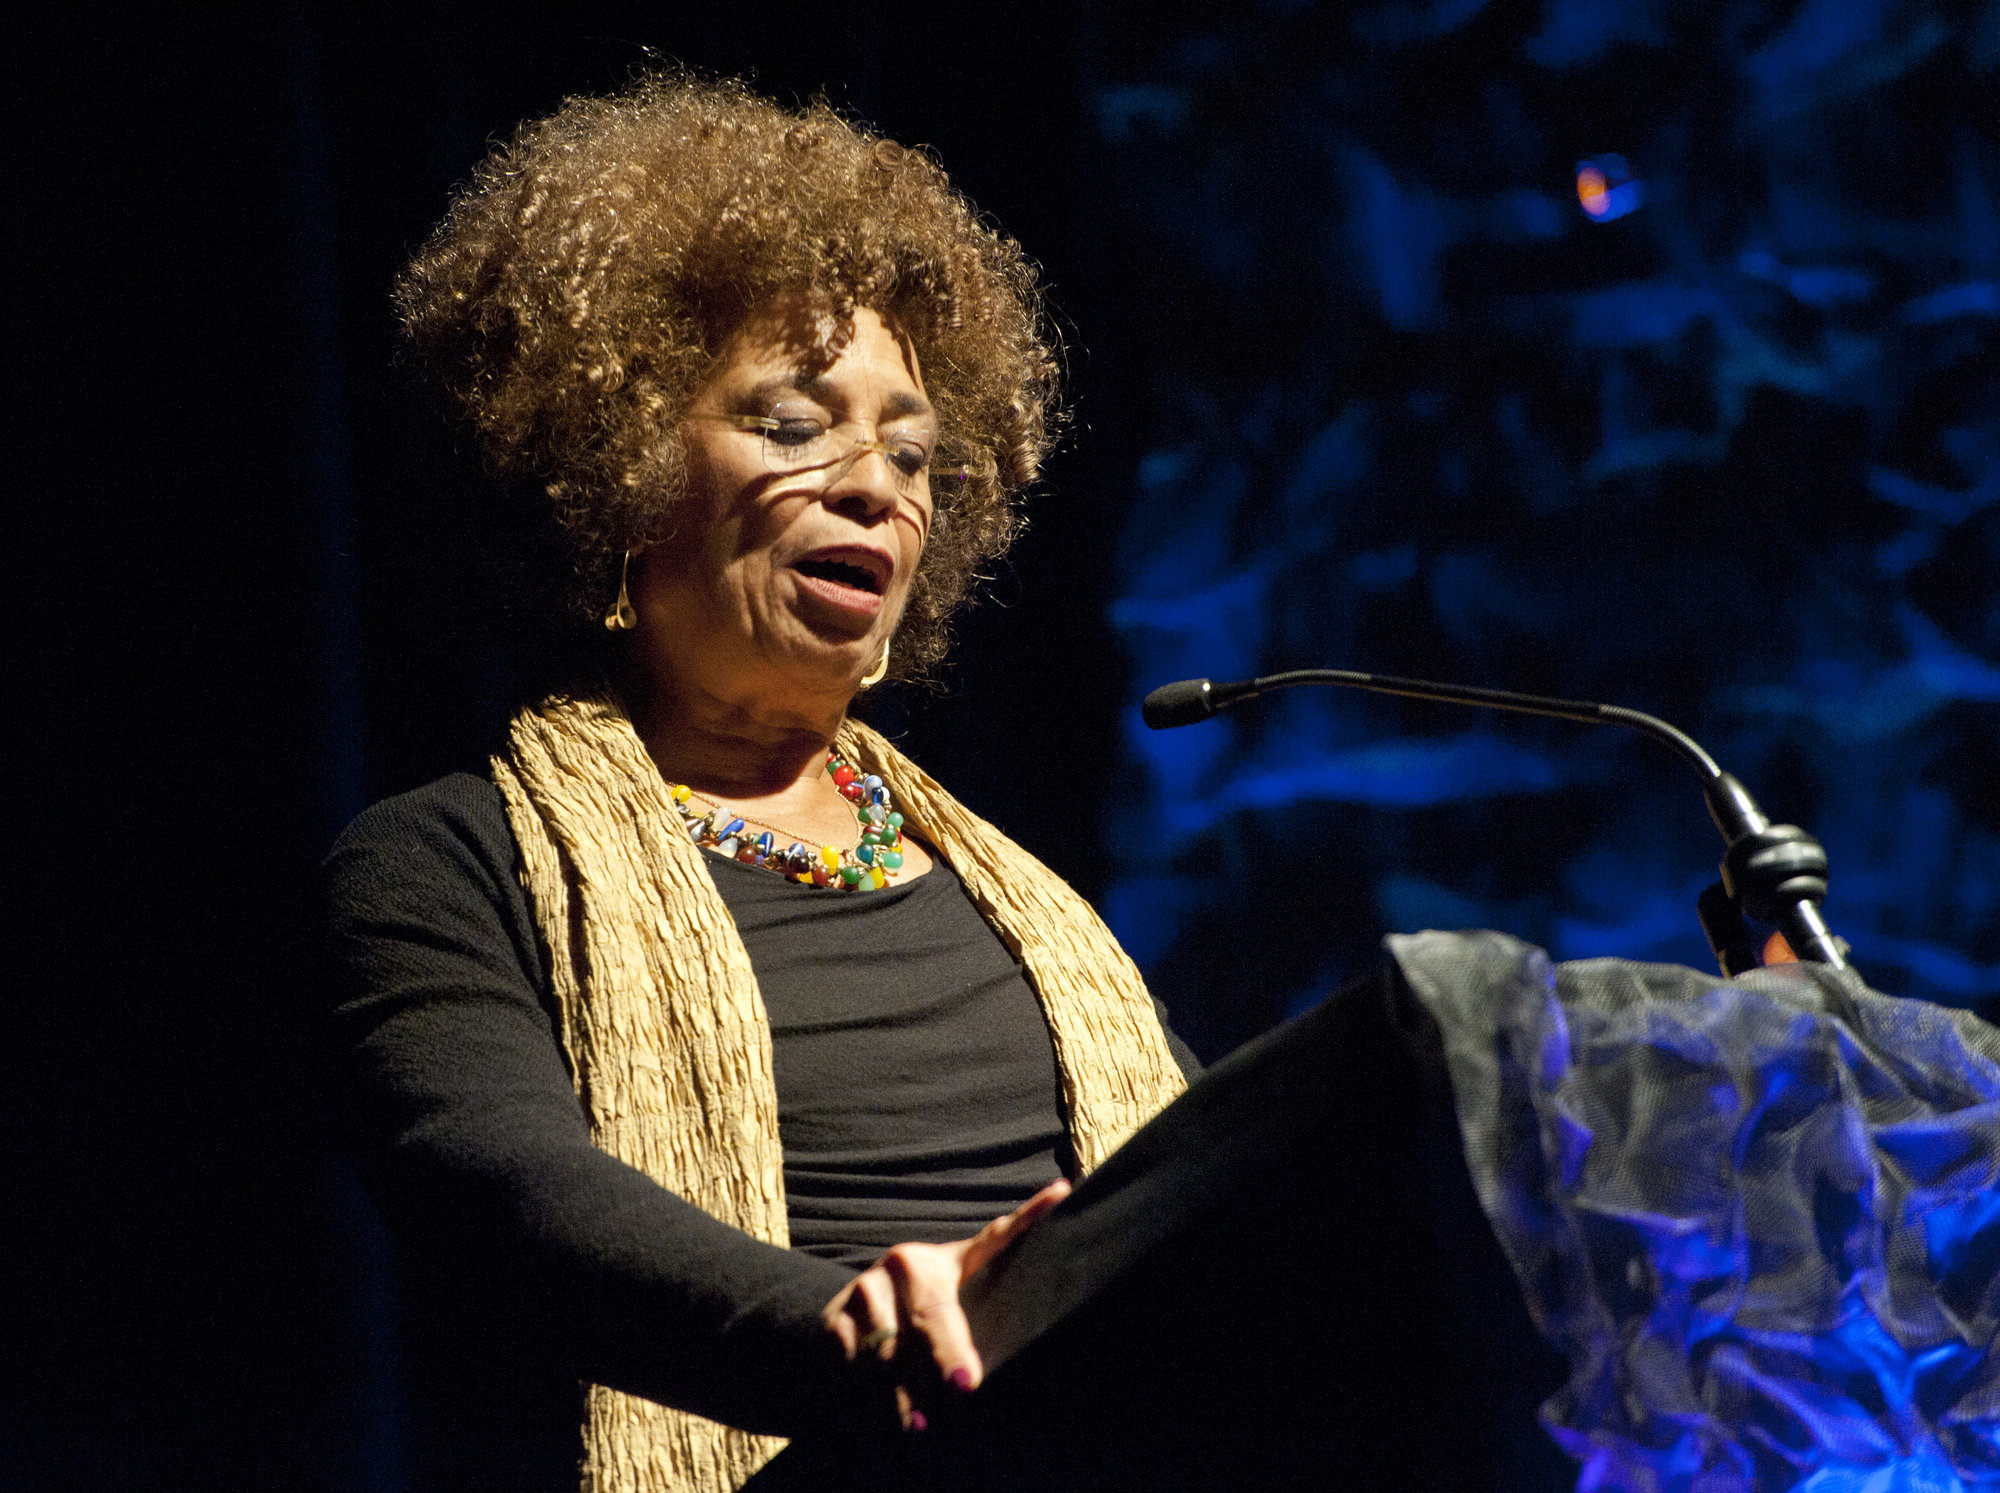 http://spec.lib.vt.edu/pickup/Omeka_upload/AngelaDavis_Photo_MichaelKiernan.jpg